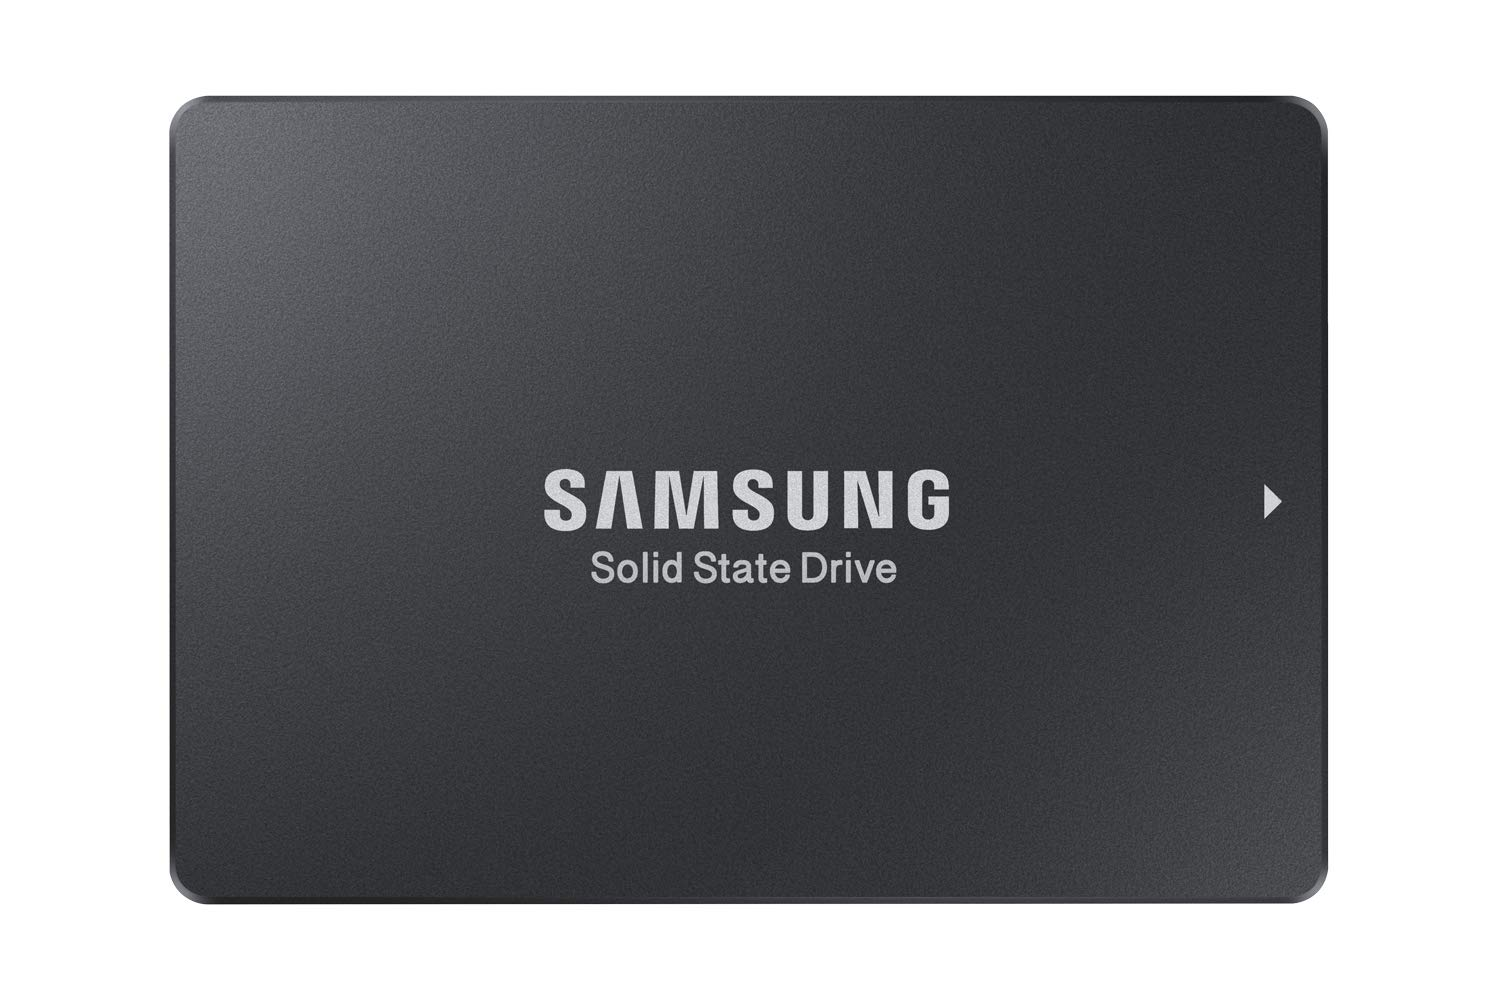 Samsung 883 DCT Series - 960GB SATA 2.5'' 7mm SSD - MZ-7LH960NE - 5 Year Limited Warranty